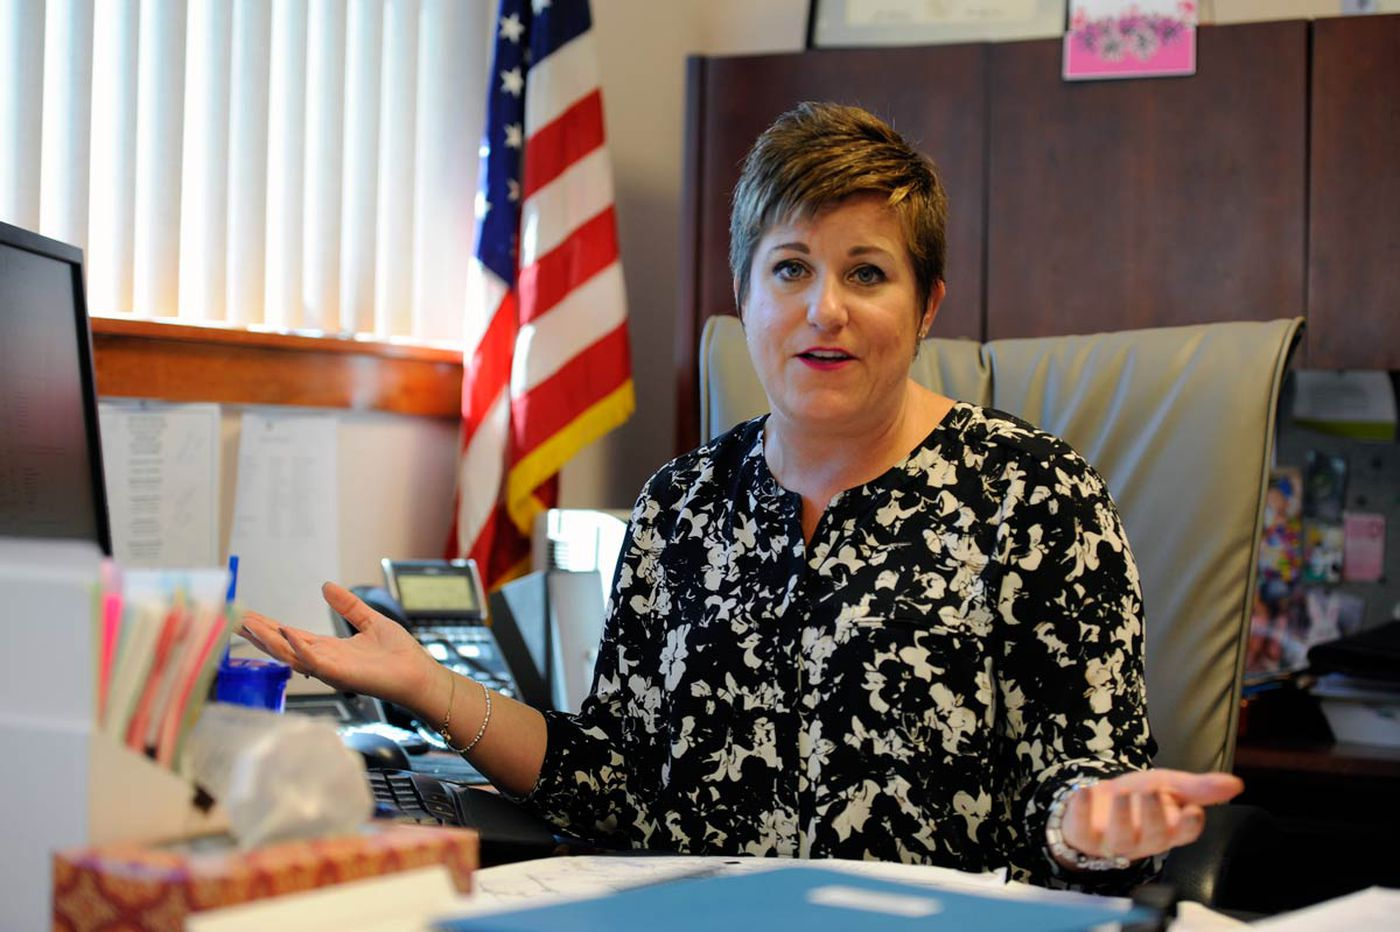 Pa.'s victim advocate channeled personal trauma into a meaningful career